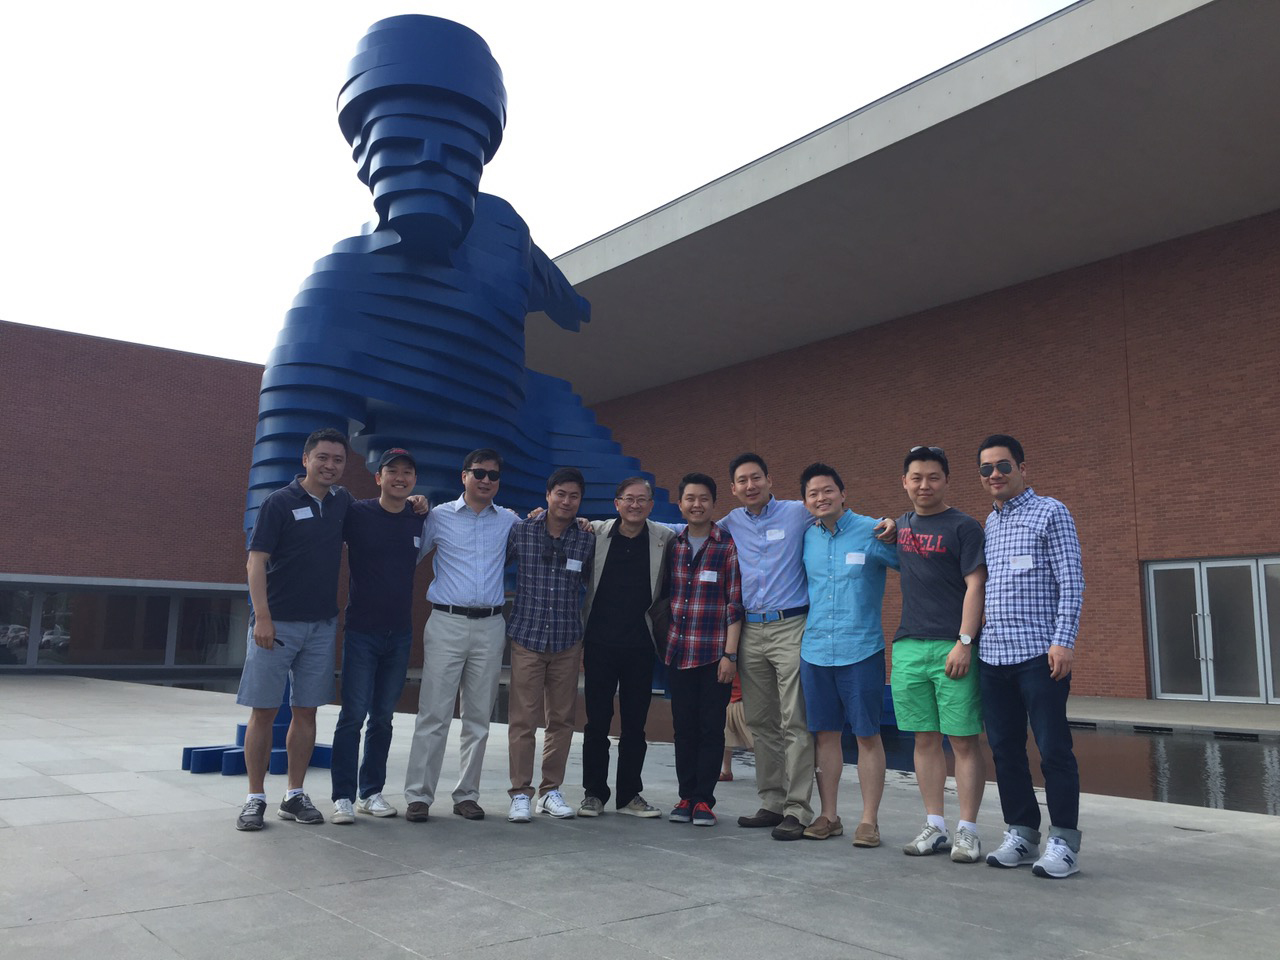 Johnson alumni at the 2015 Cornell Club picnic held at the AmorePacific Beauty campus